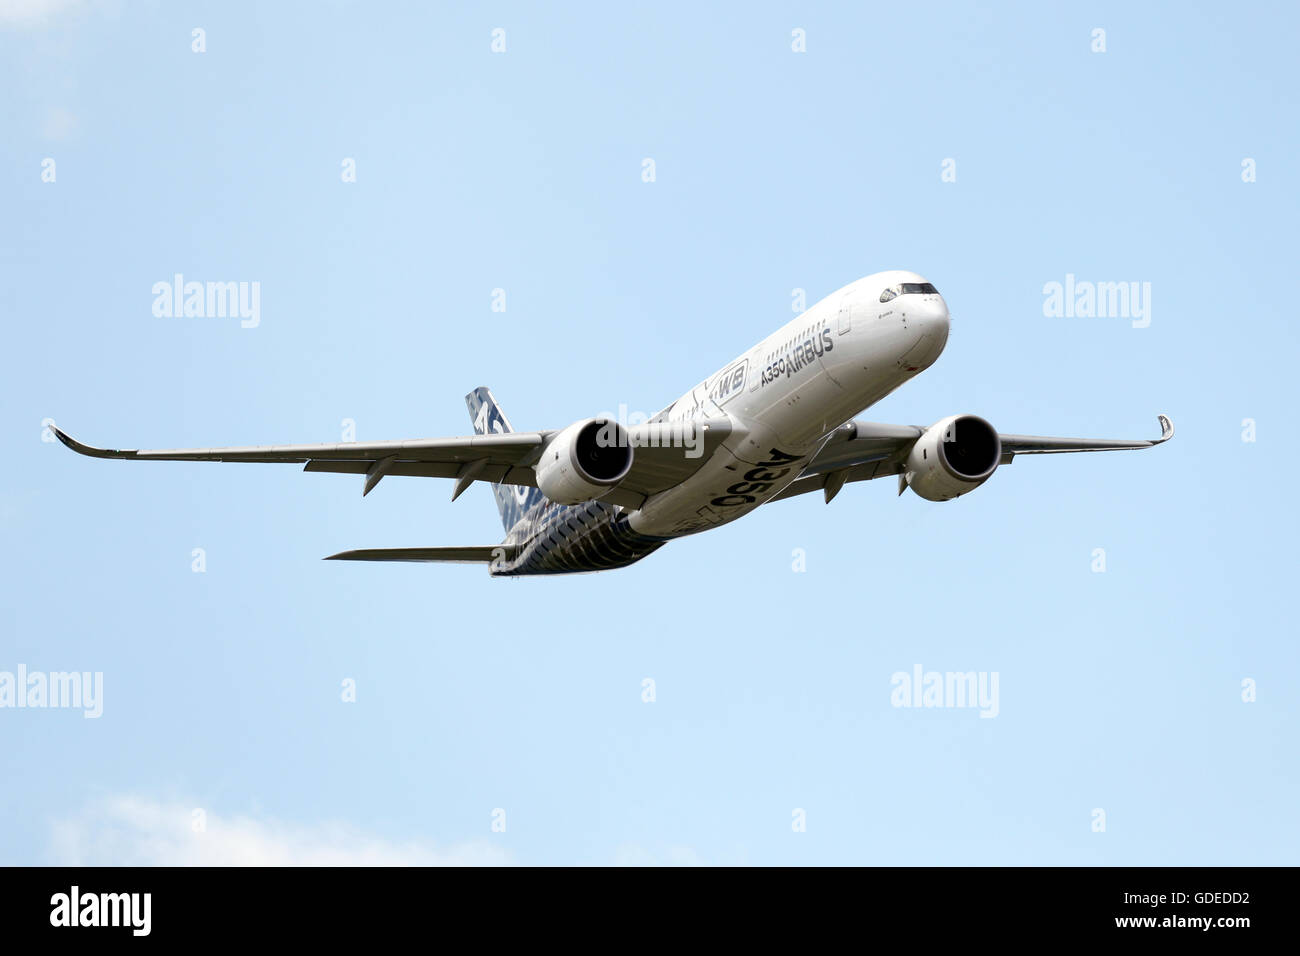 An Airbus A350 flies during the Farnborough International Airshow in July 2016 Stock Photo